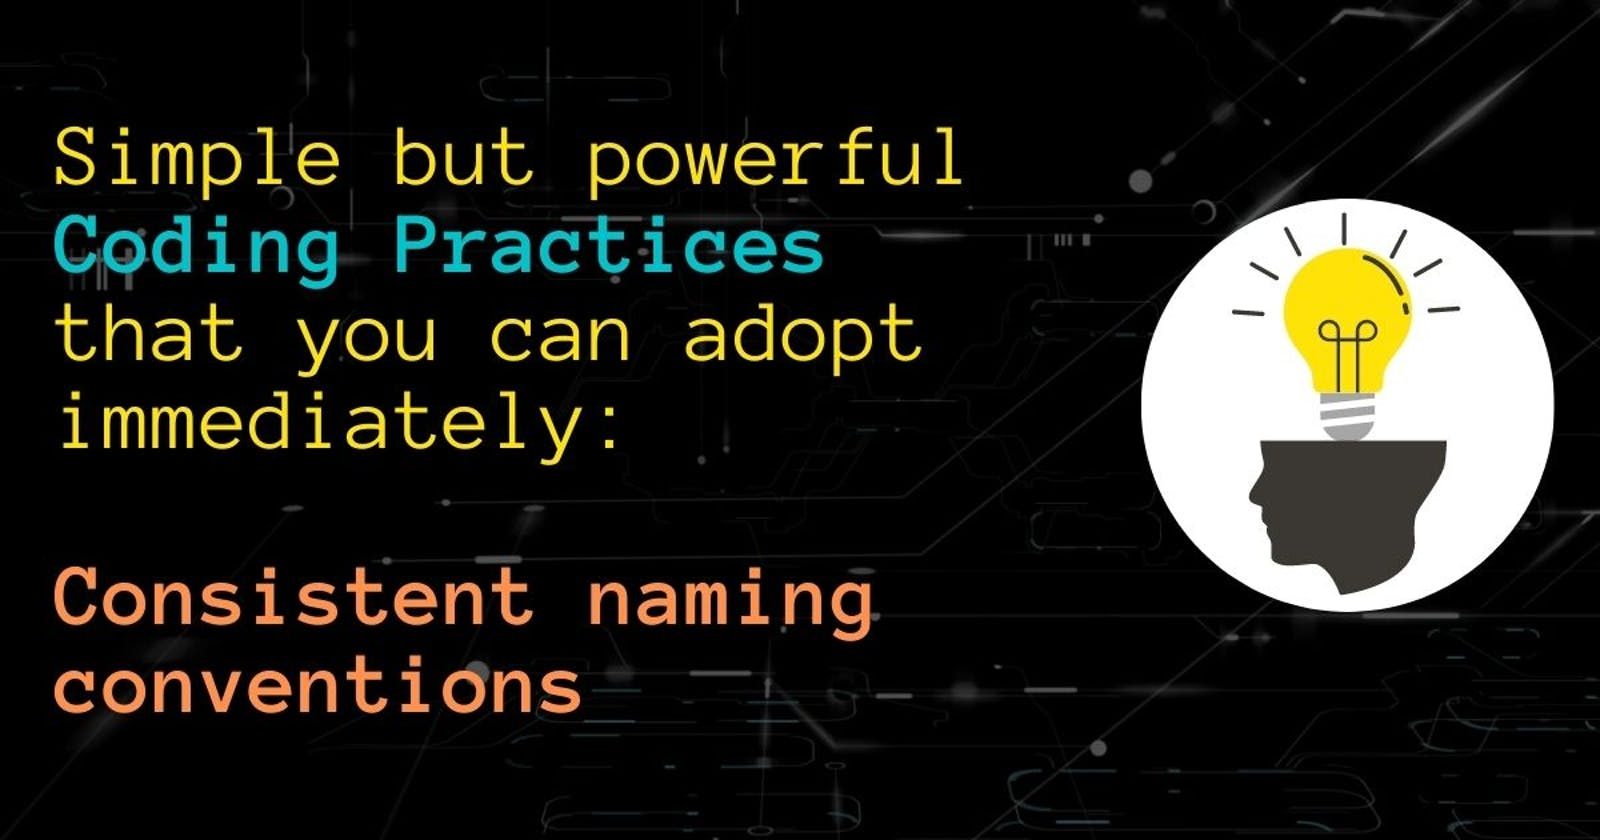 Simple but powerful Coding Practices that you can adopt immediately: Consistent naming conventions